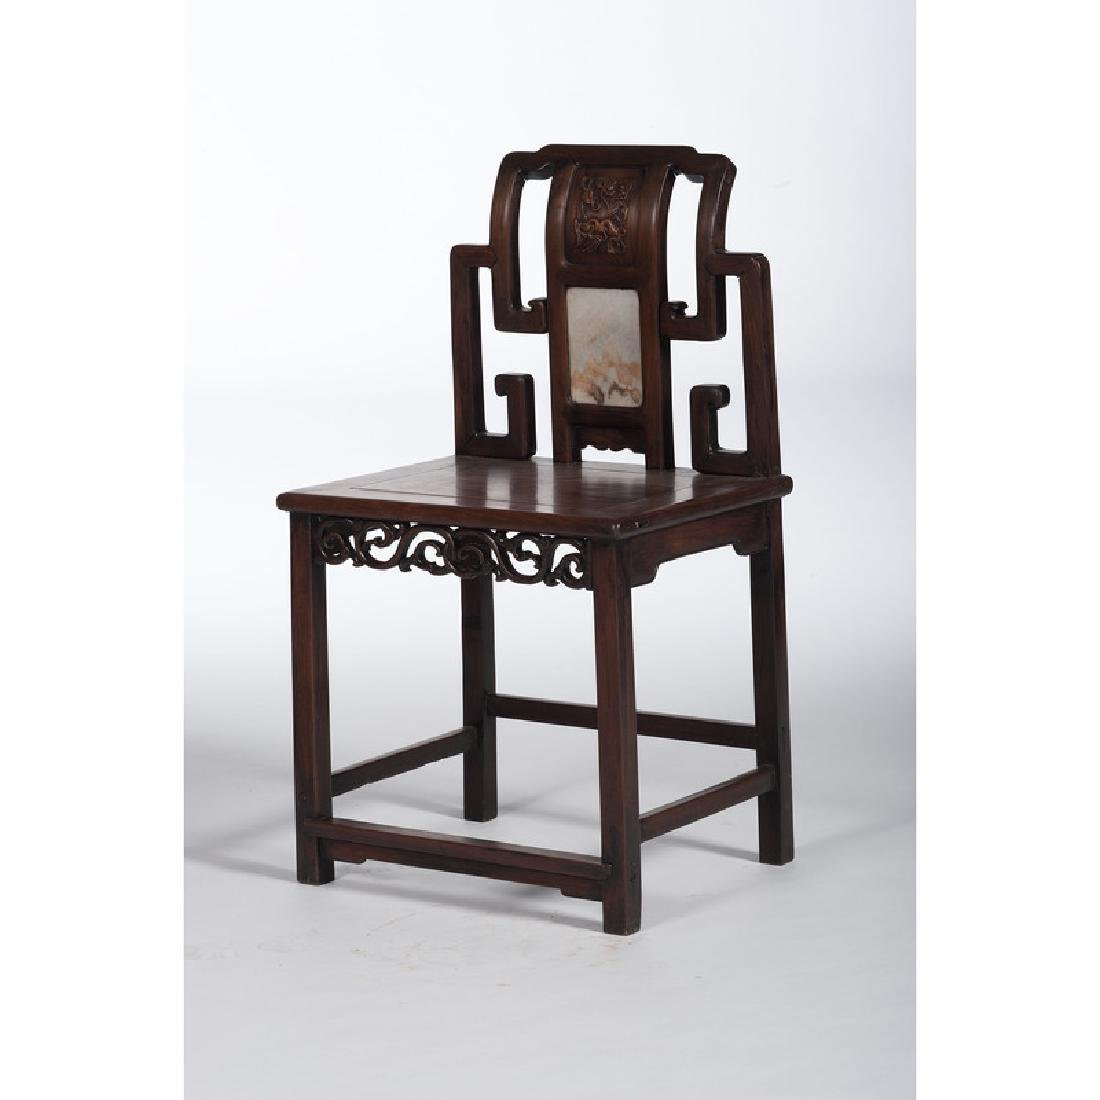 Chinese Side Chair with Marble Panel